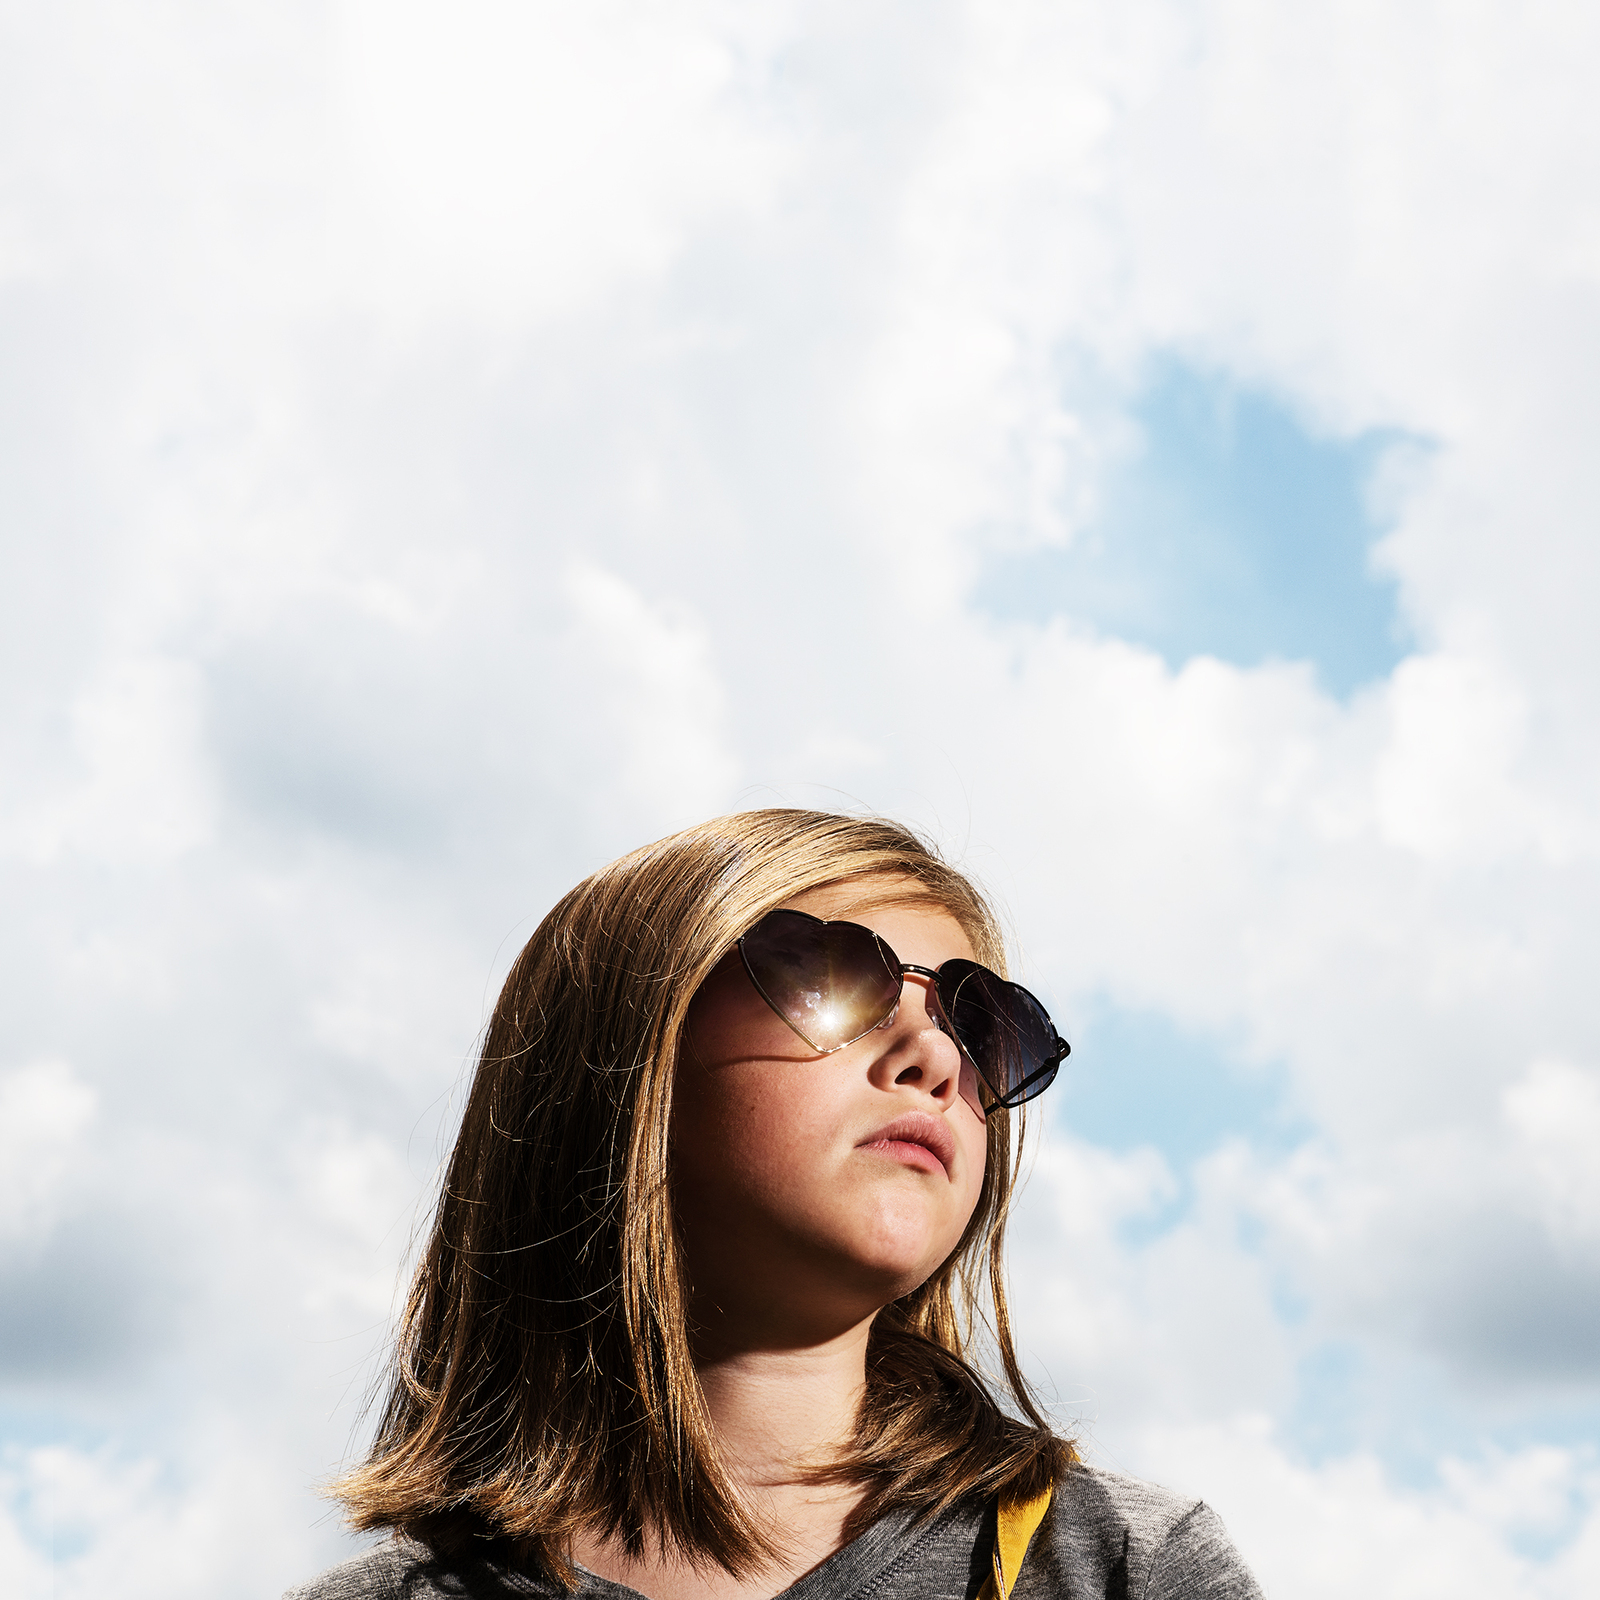 girl wearing sunglasses with blue sky in background